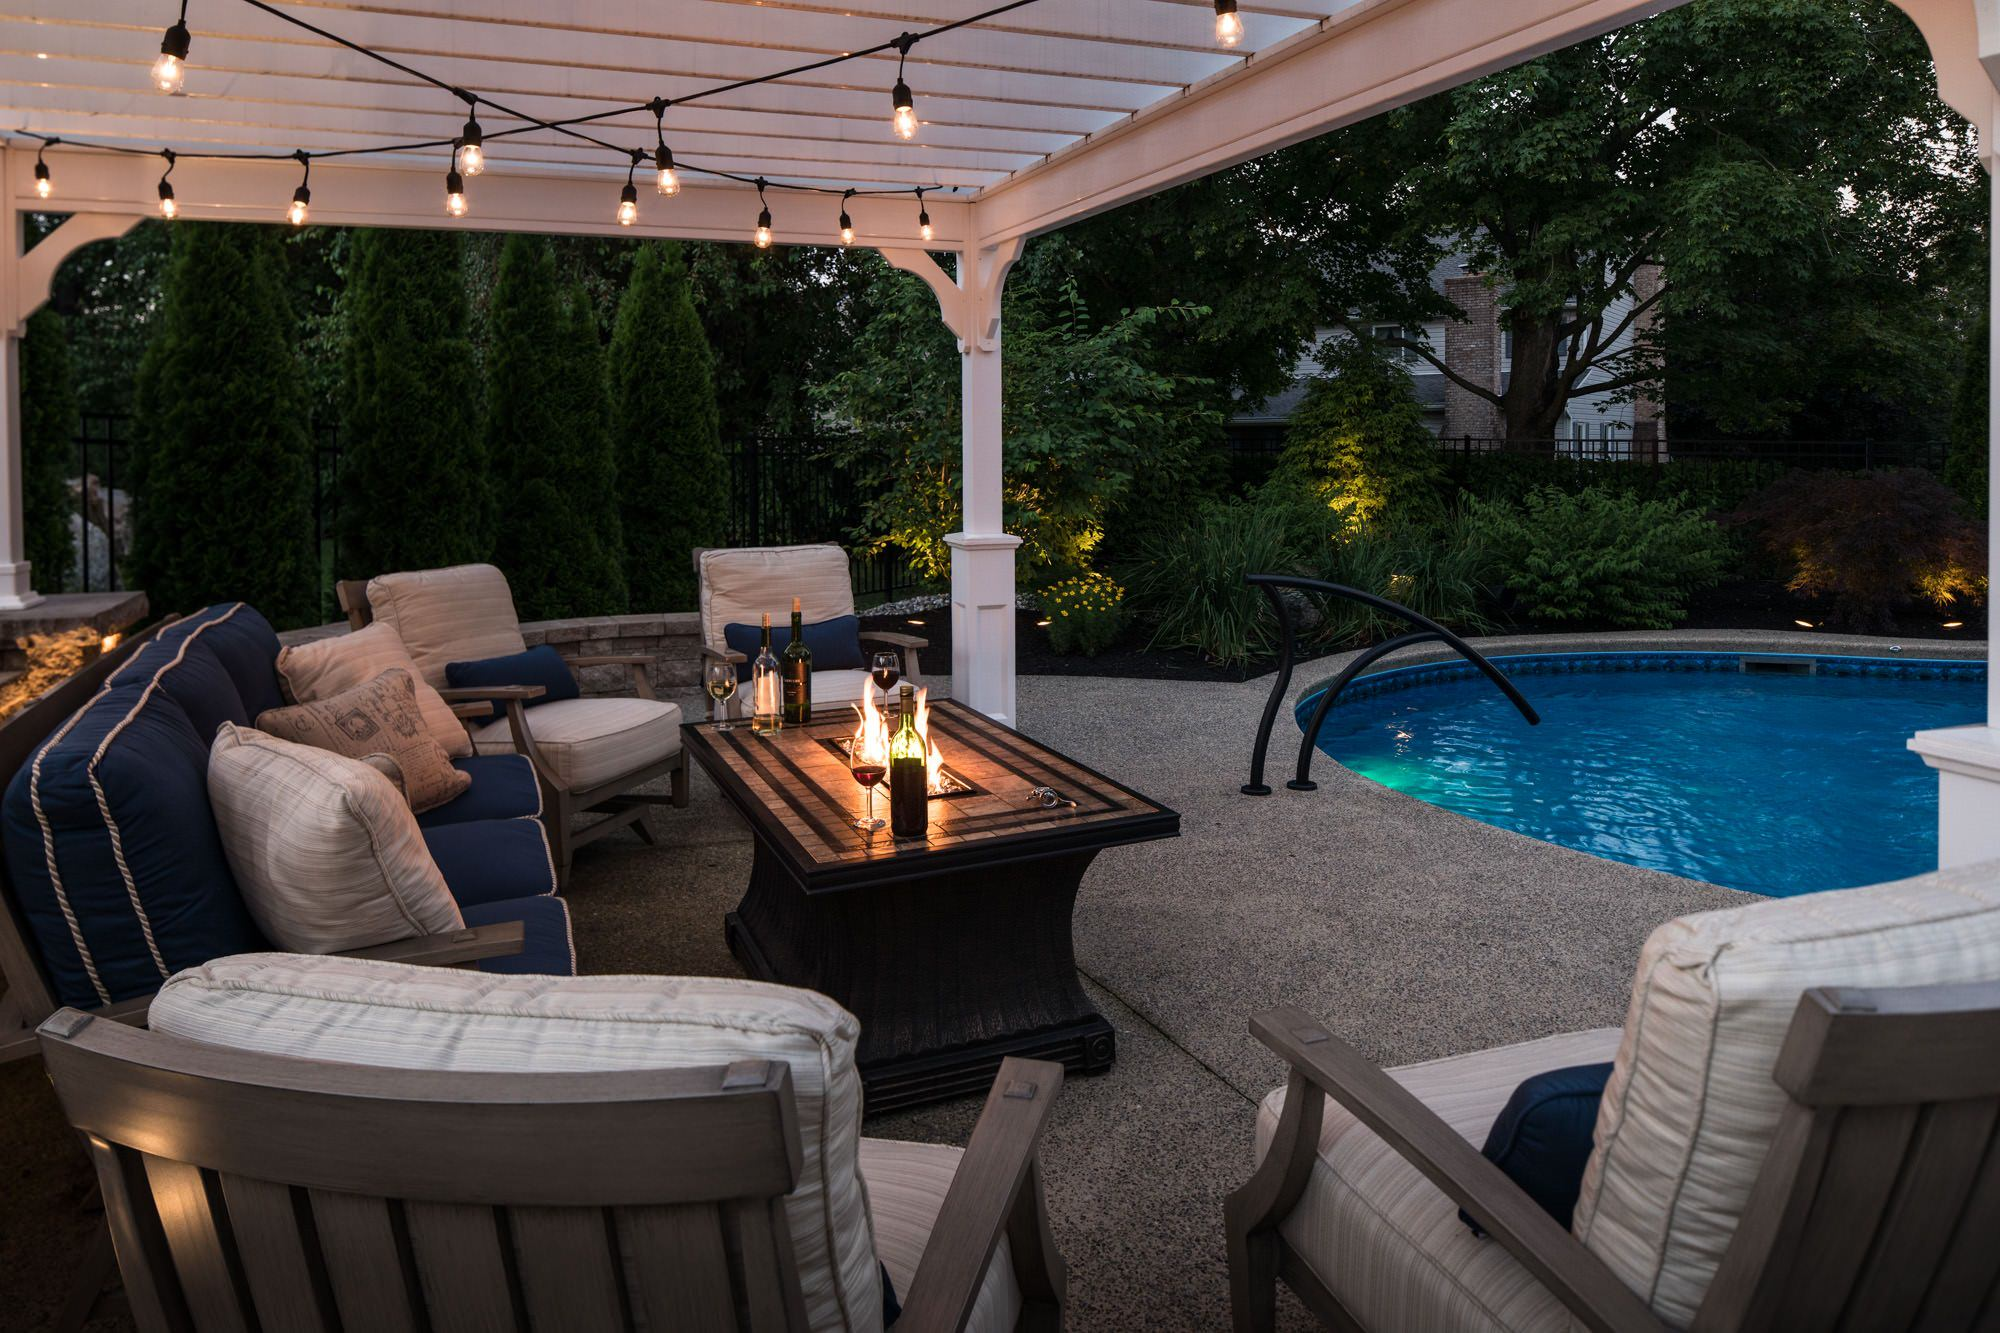 When the sun goes down, the lights and fire come alive!  Doesn't this look utterly relaxing?